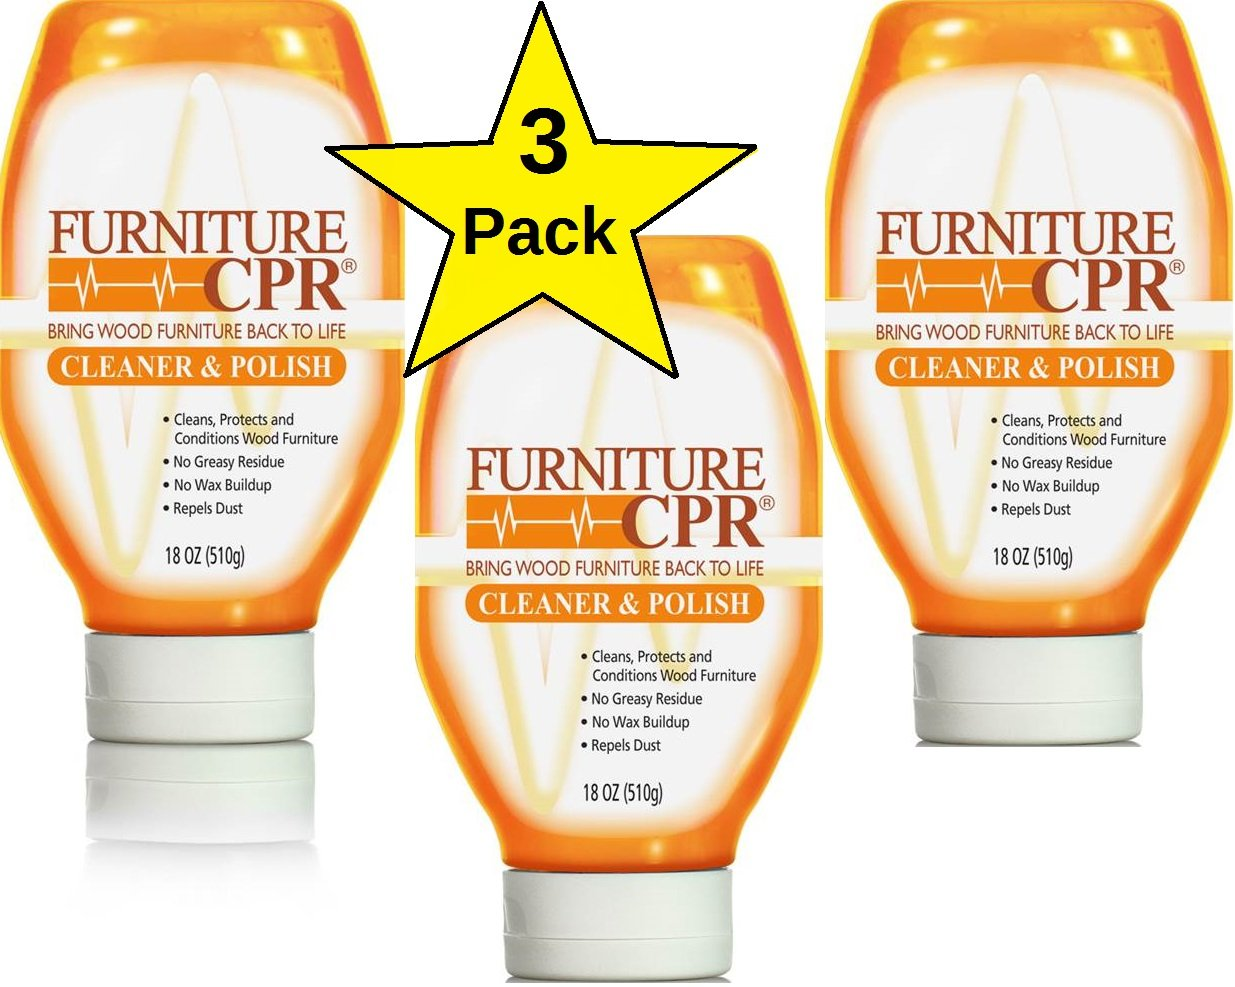 Furniture CPR (Value 3PK -18oz Bottles) – Cleans & Polishes Wood Furniture with No Wax Build-up – Shine Adjusts to Any Finish – Conditions Tables, Cabinets, Trim, Doors & More